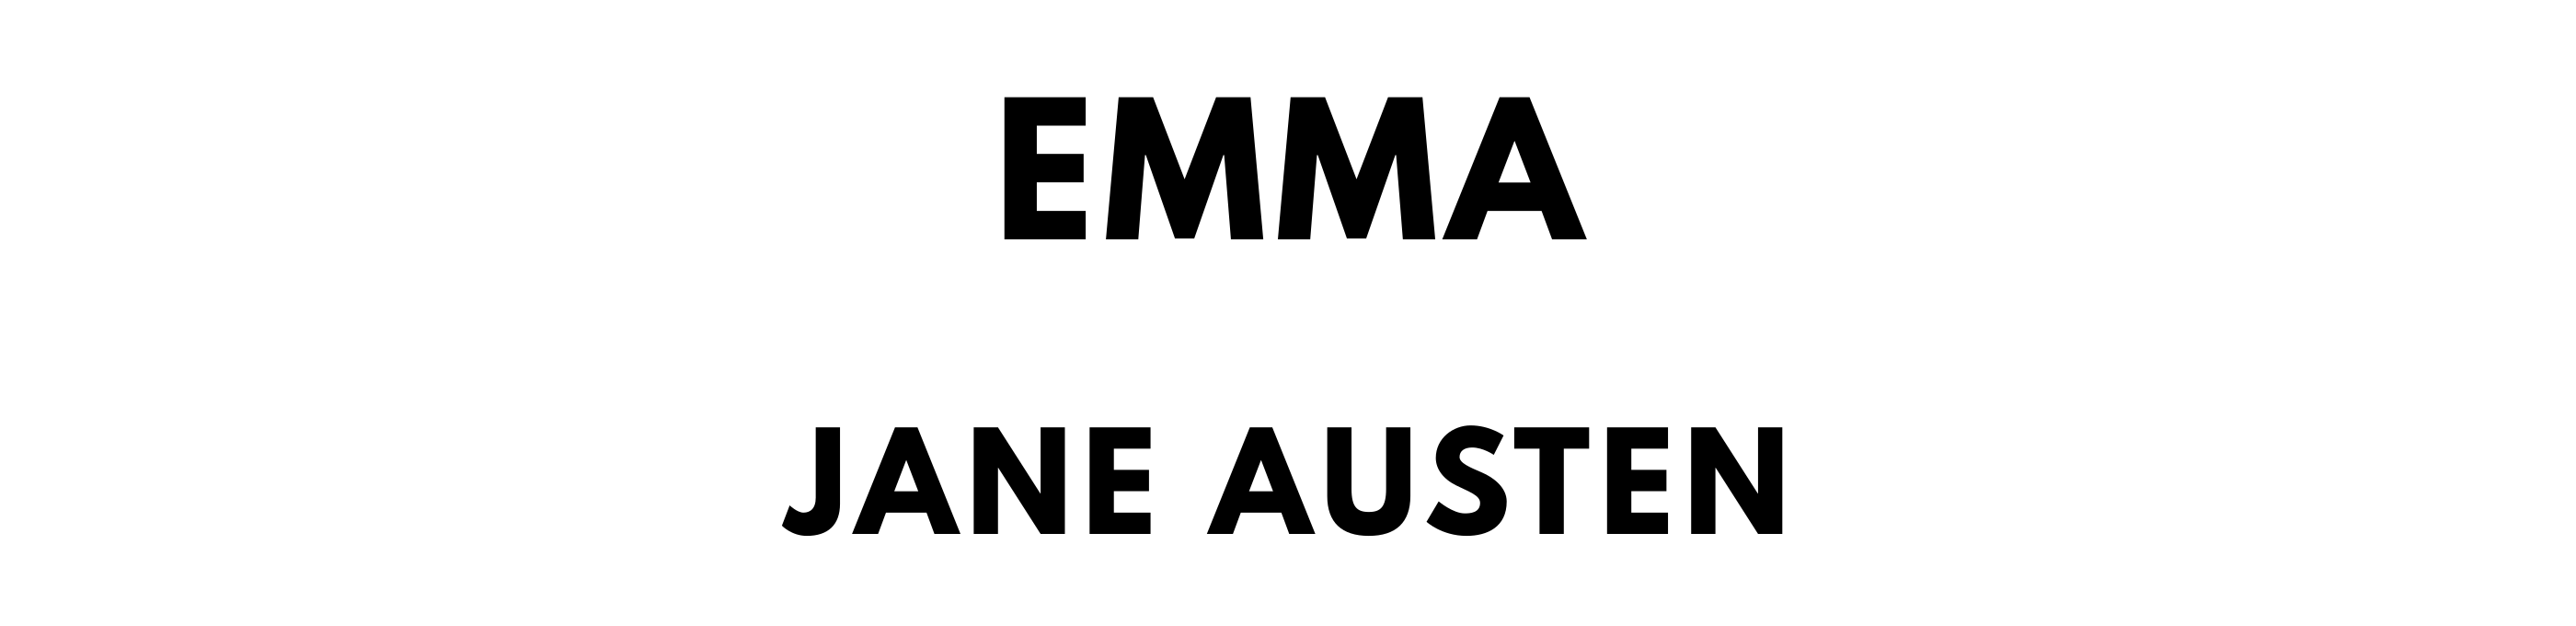 The titlepage for the Standard Ebooks edition of Emma, by Jane Austen